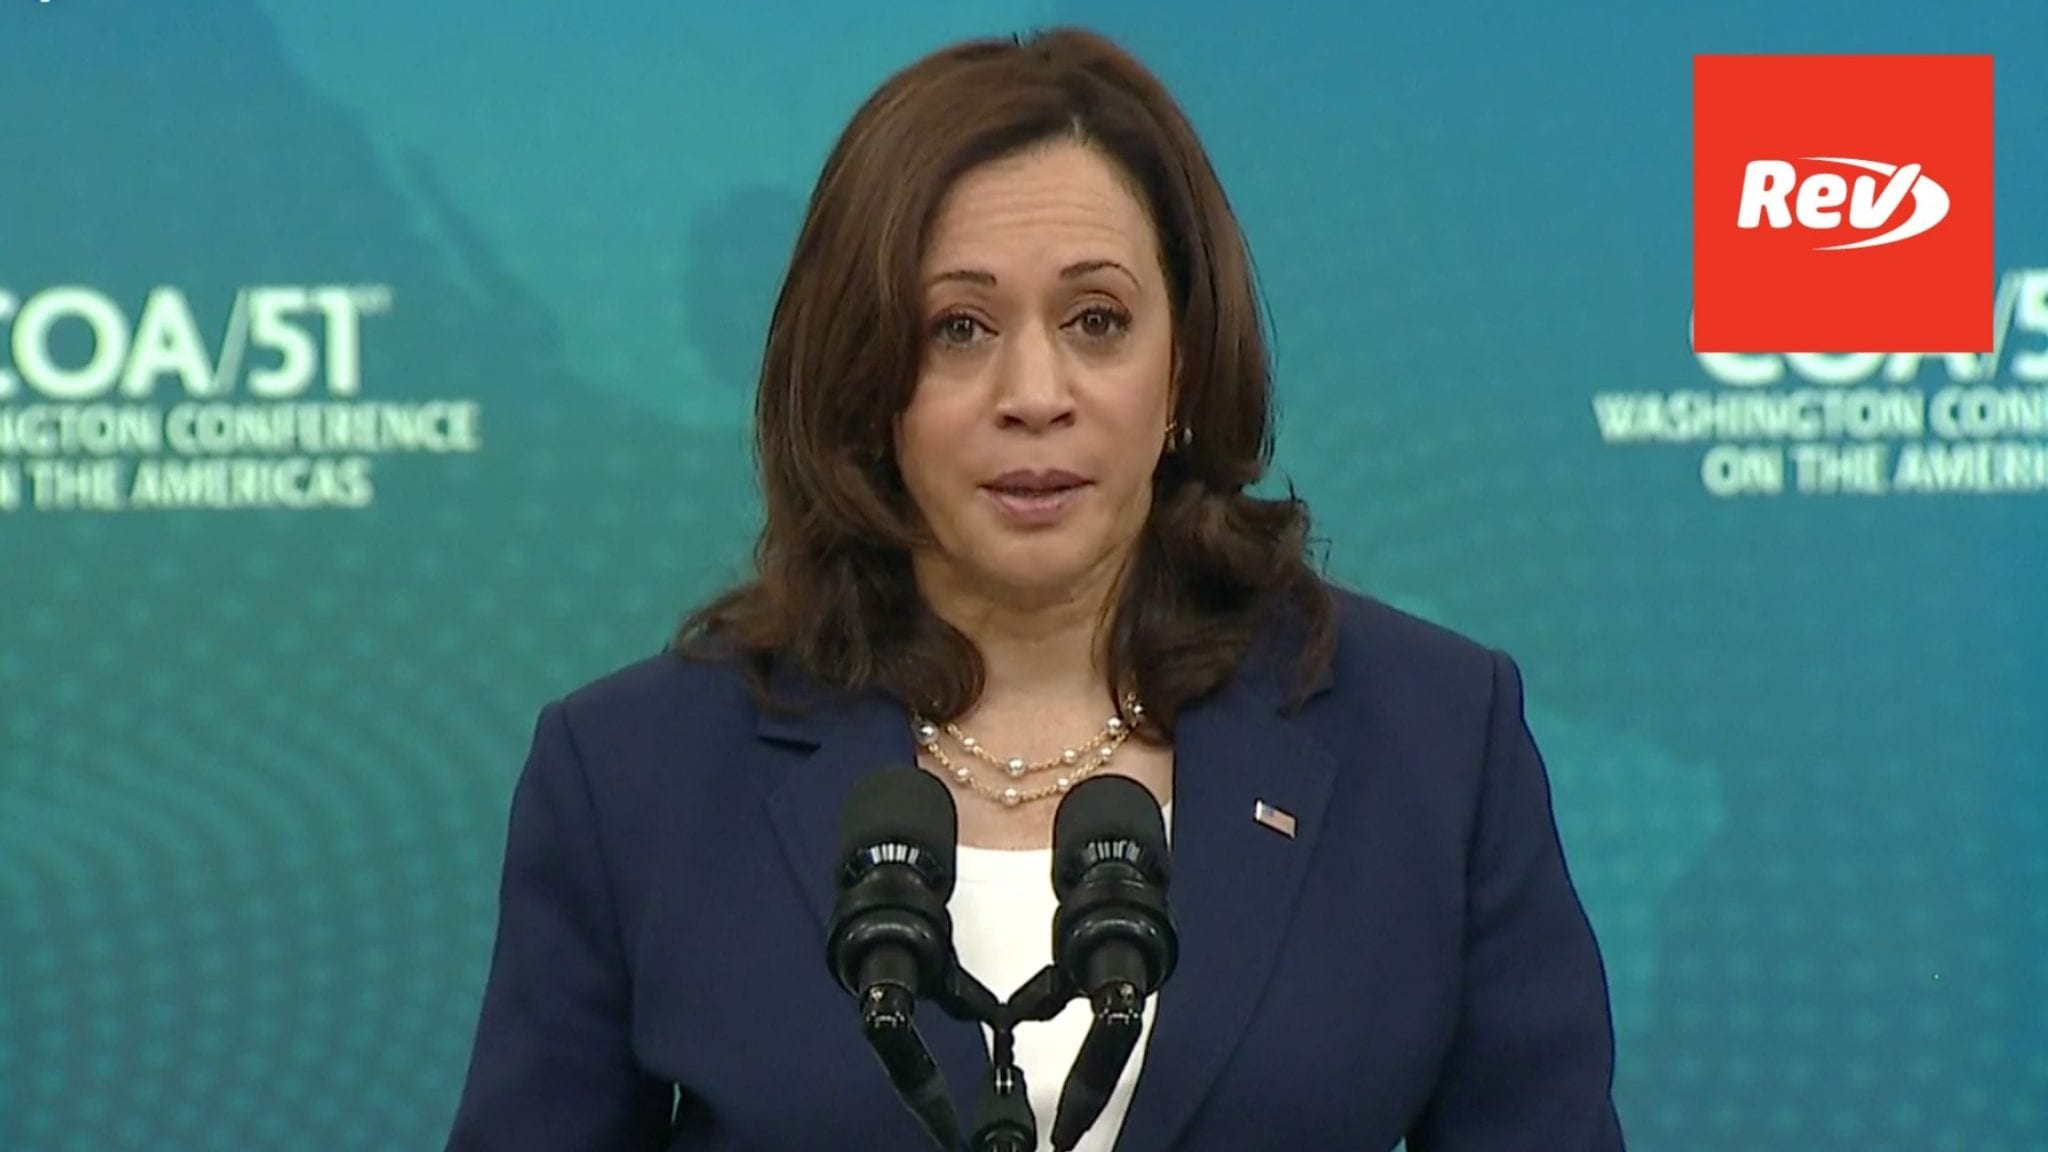 Kamala Harris Speech Transcript Washington Conference on the Americas May 4